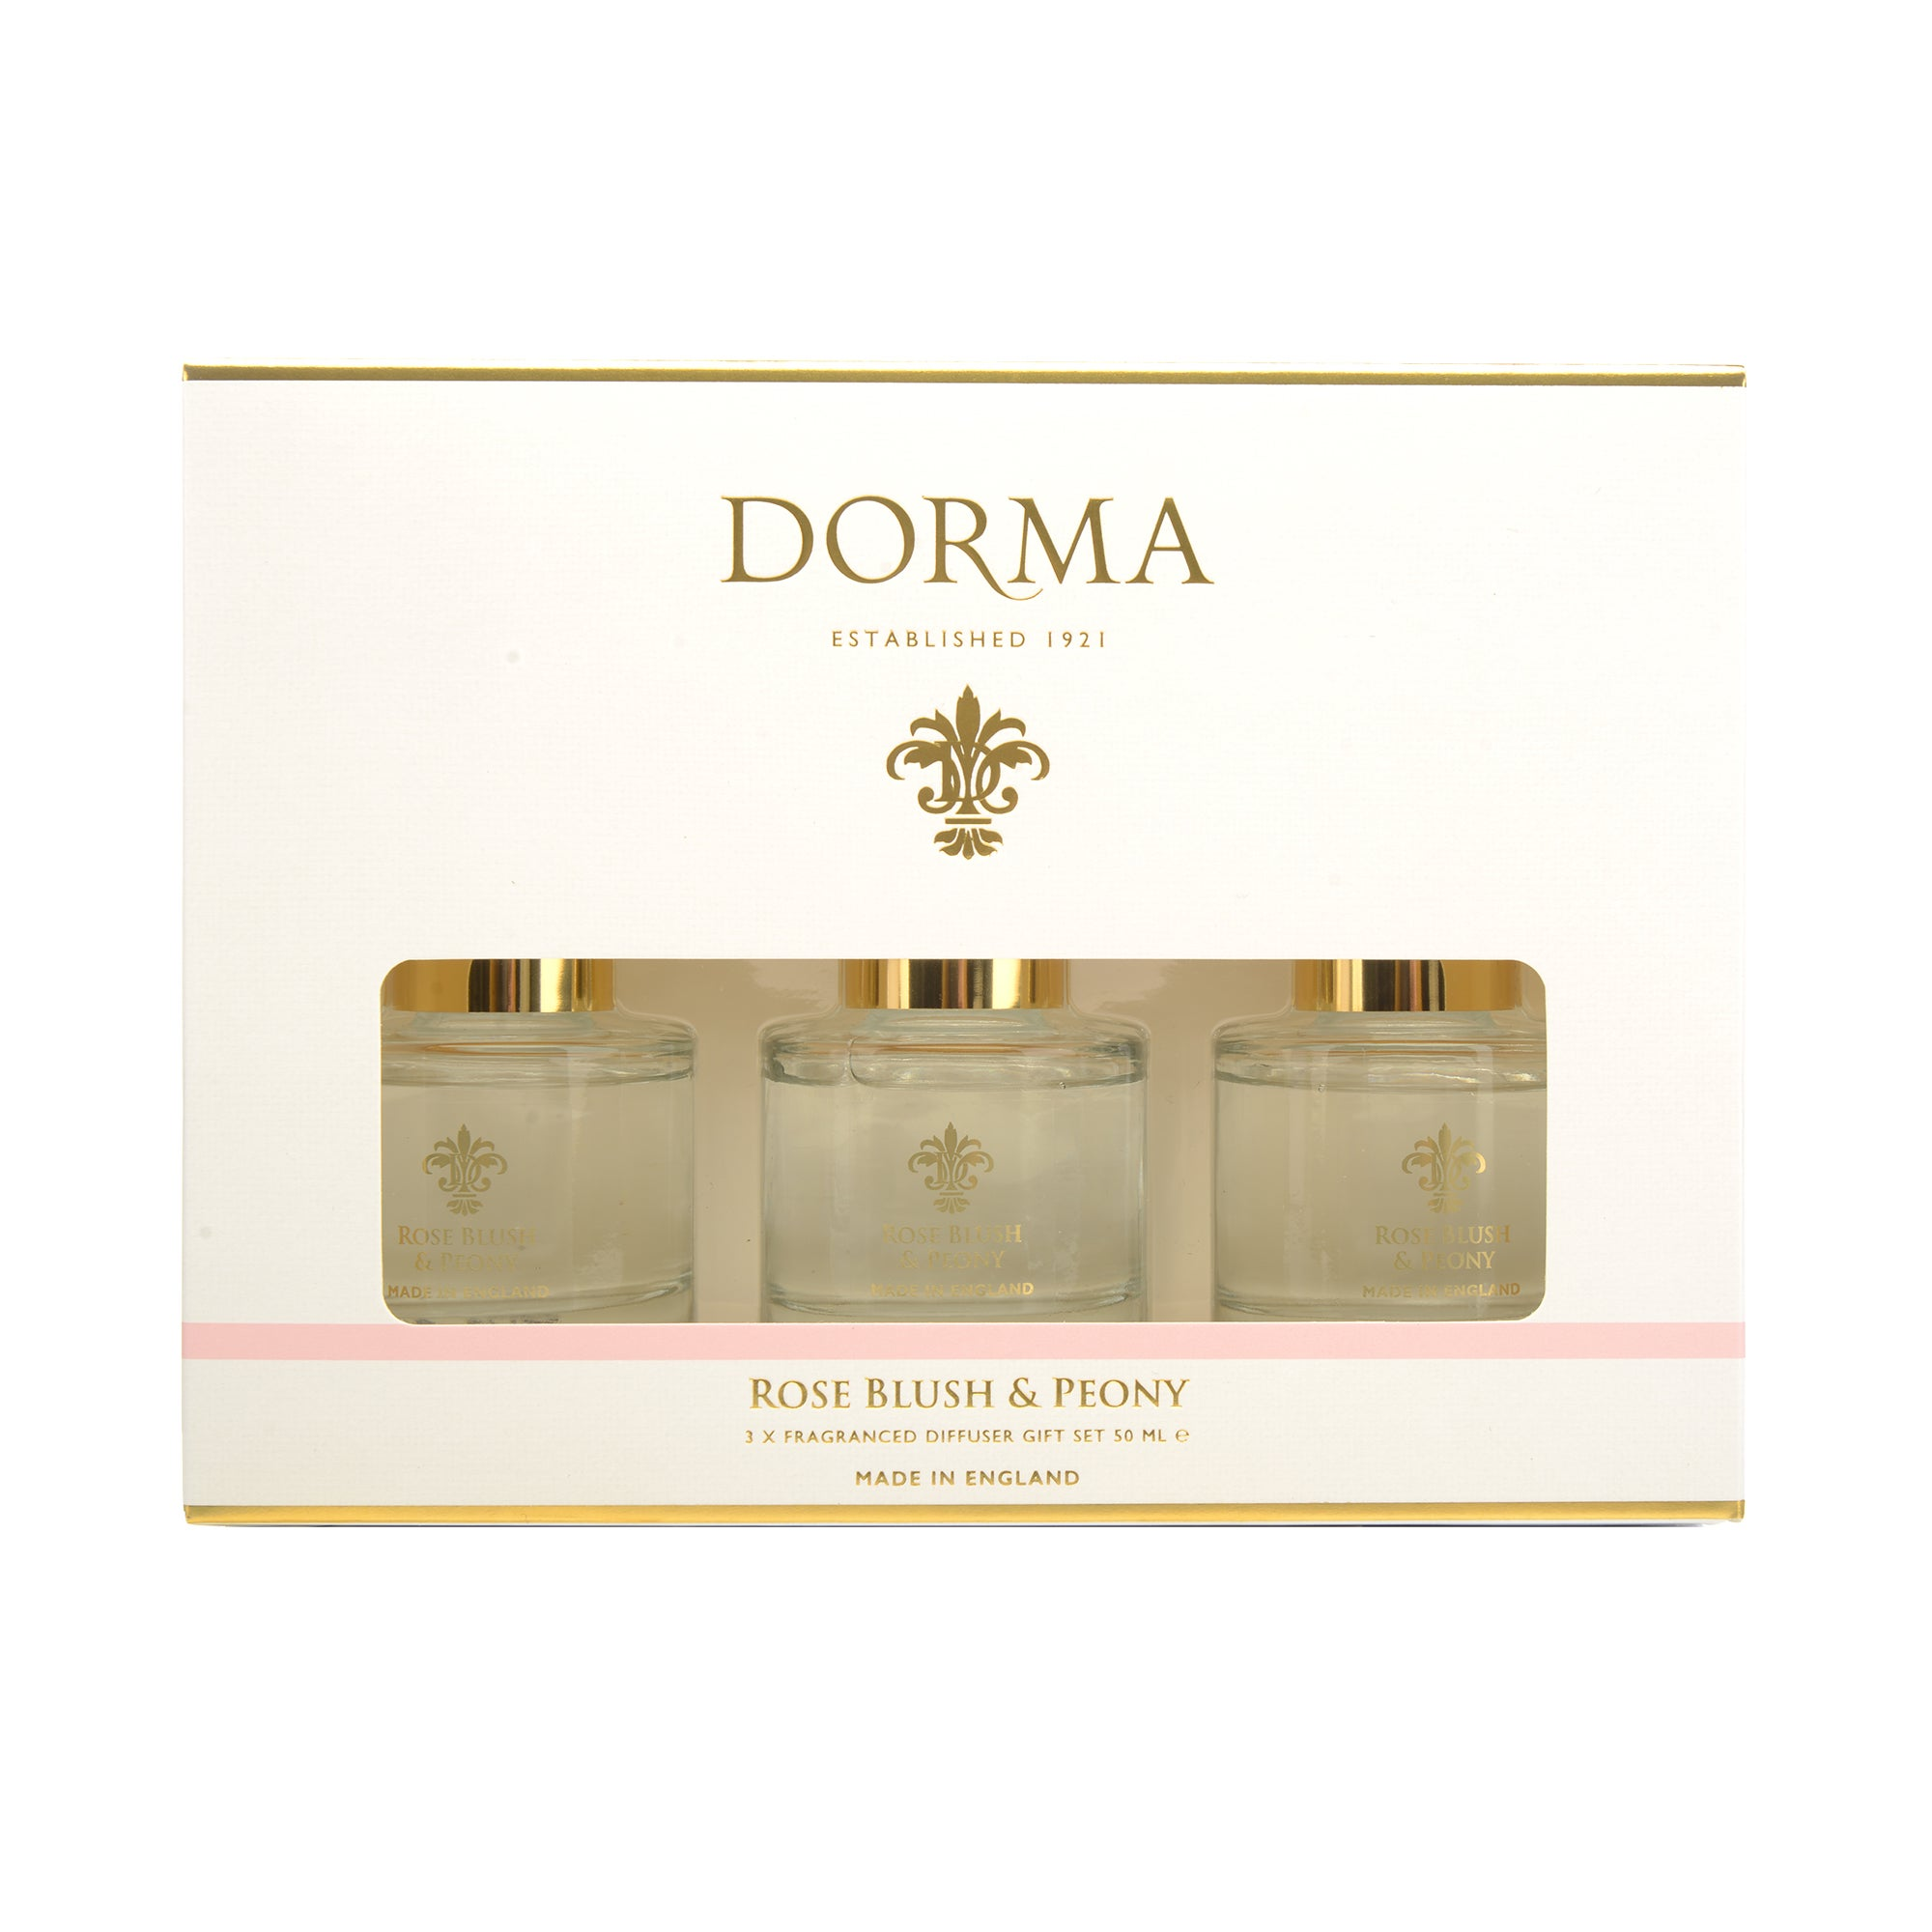 Dorma Rose Blush And Peony Set Of 3 50ml Reed Diffusers White